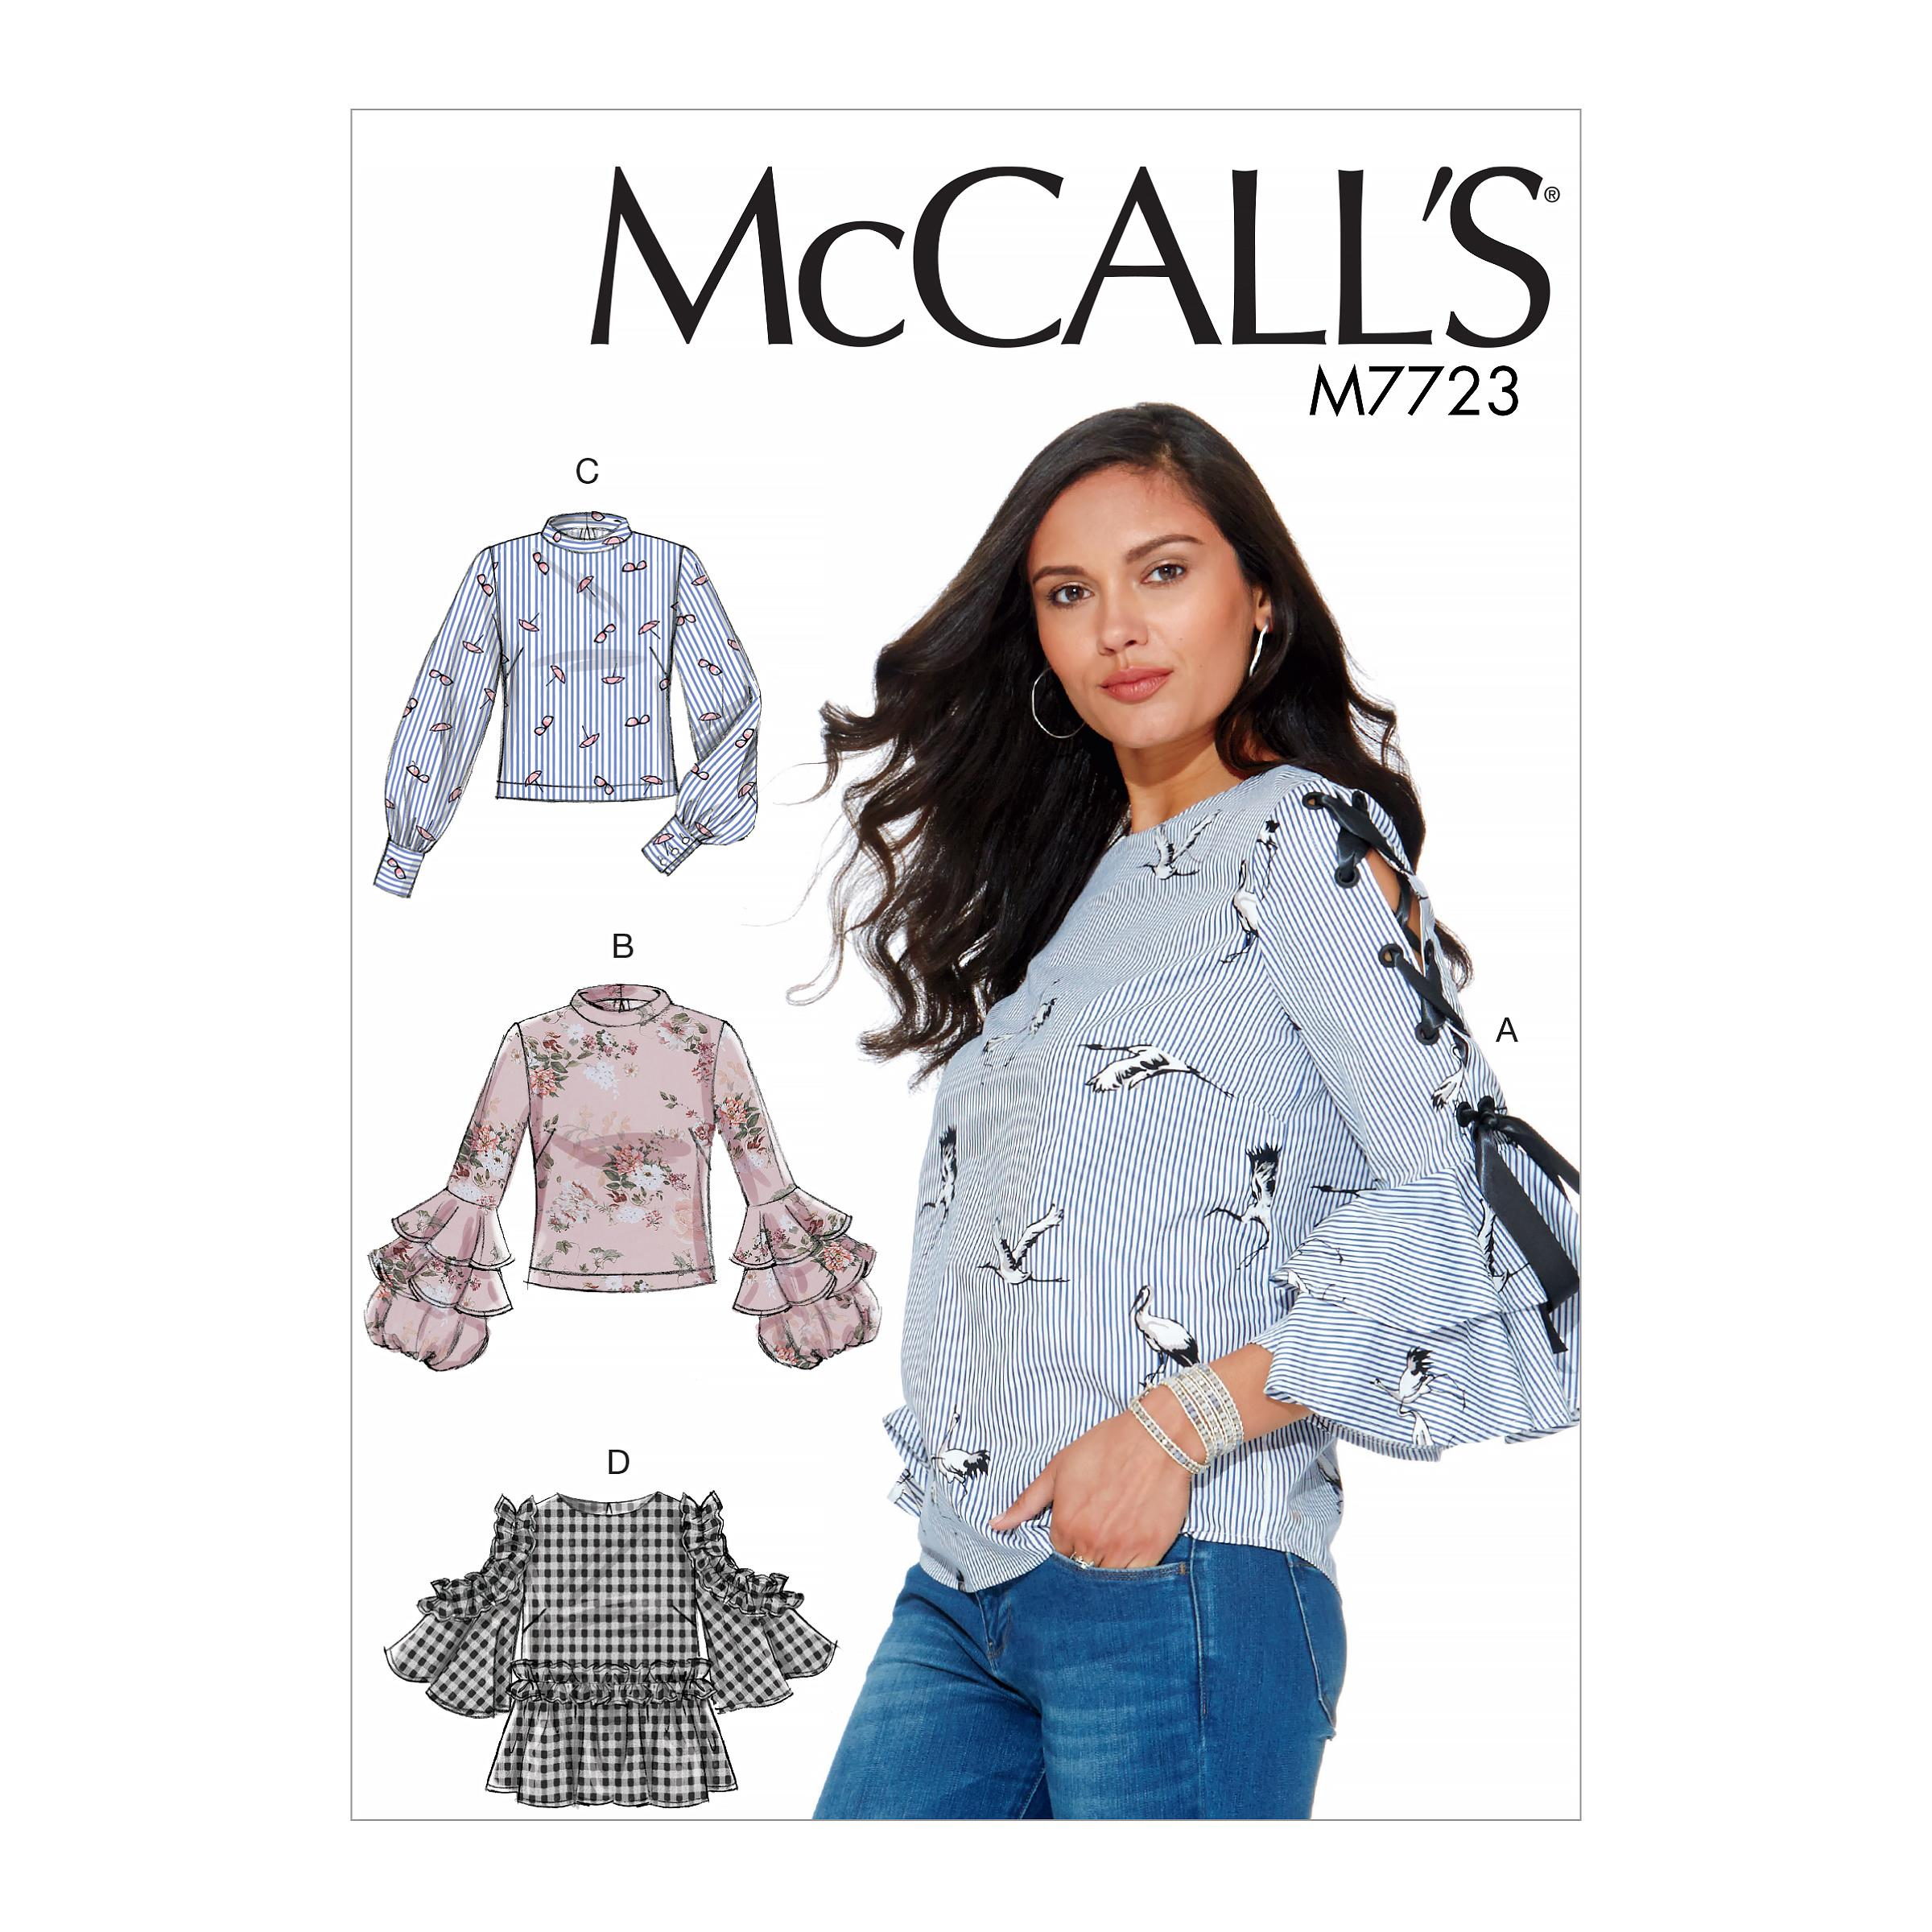 McCalls M7723 Misses Tops